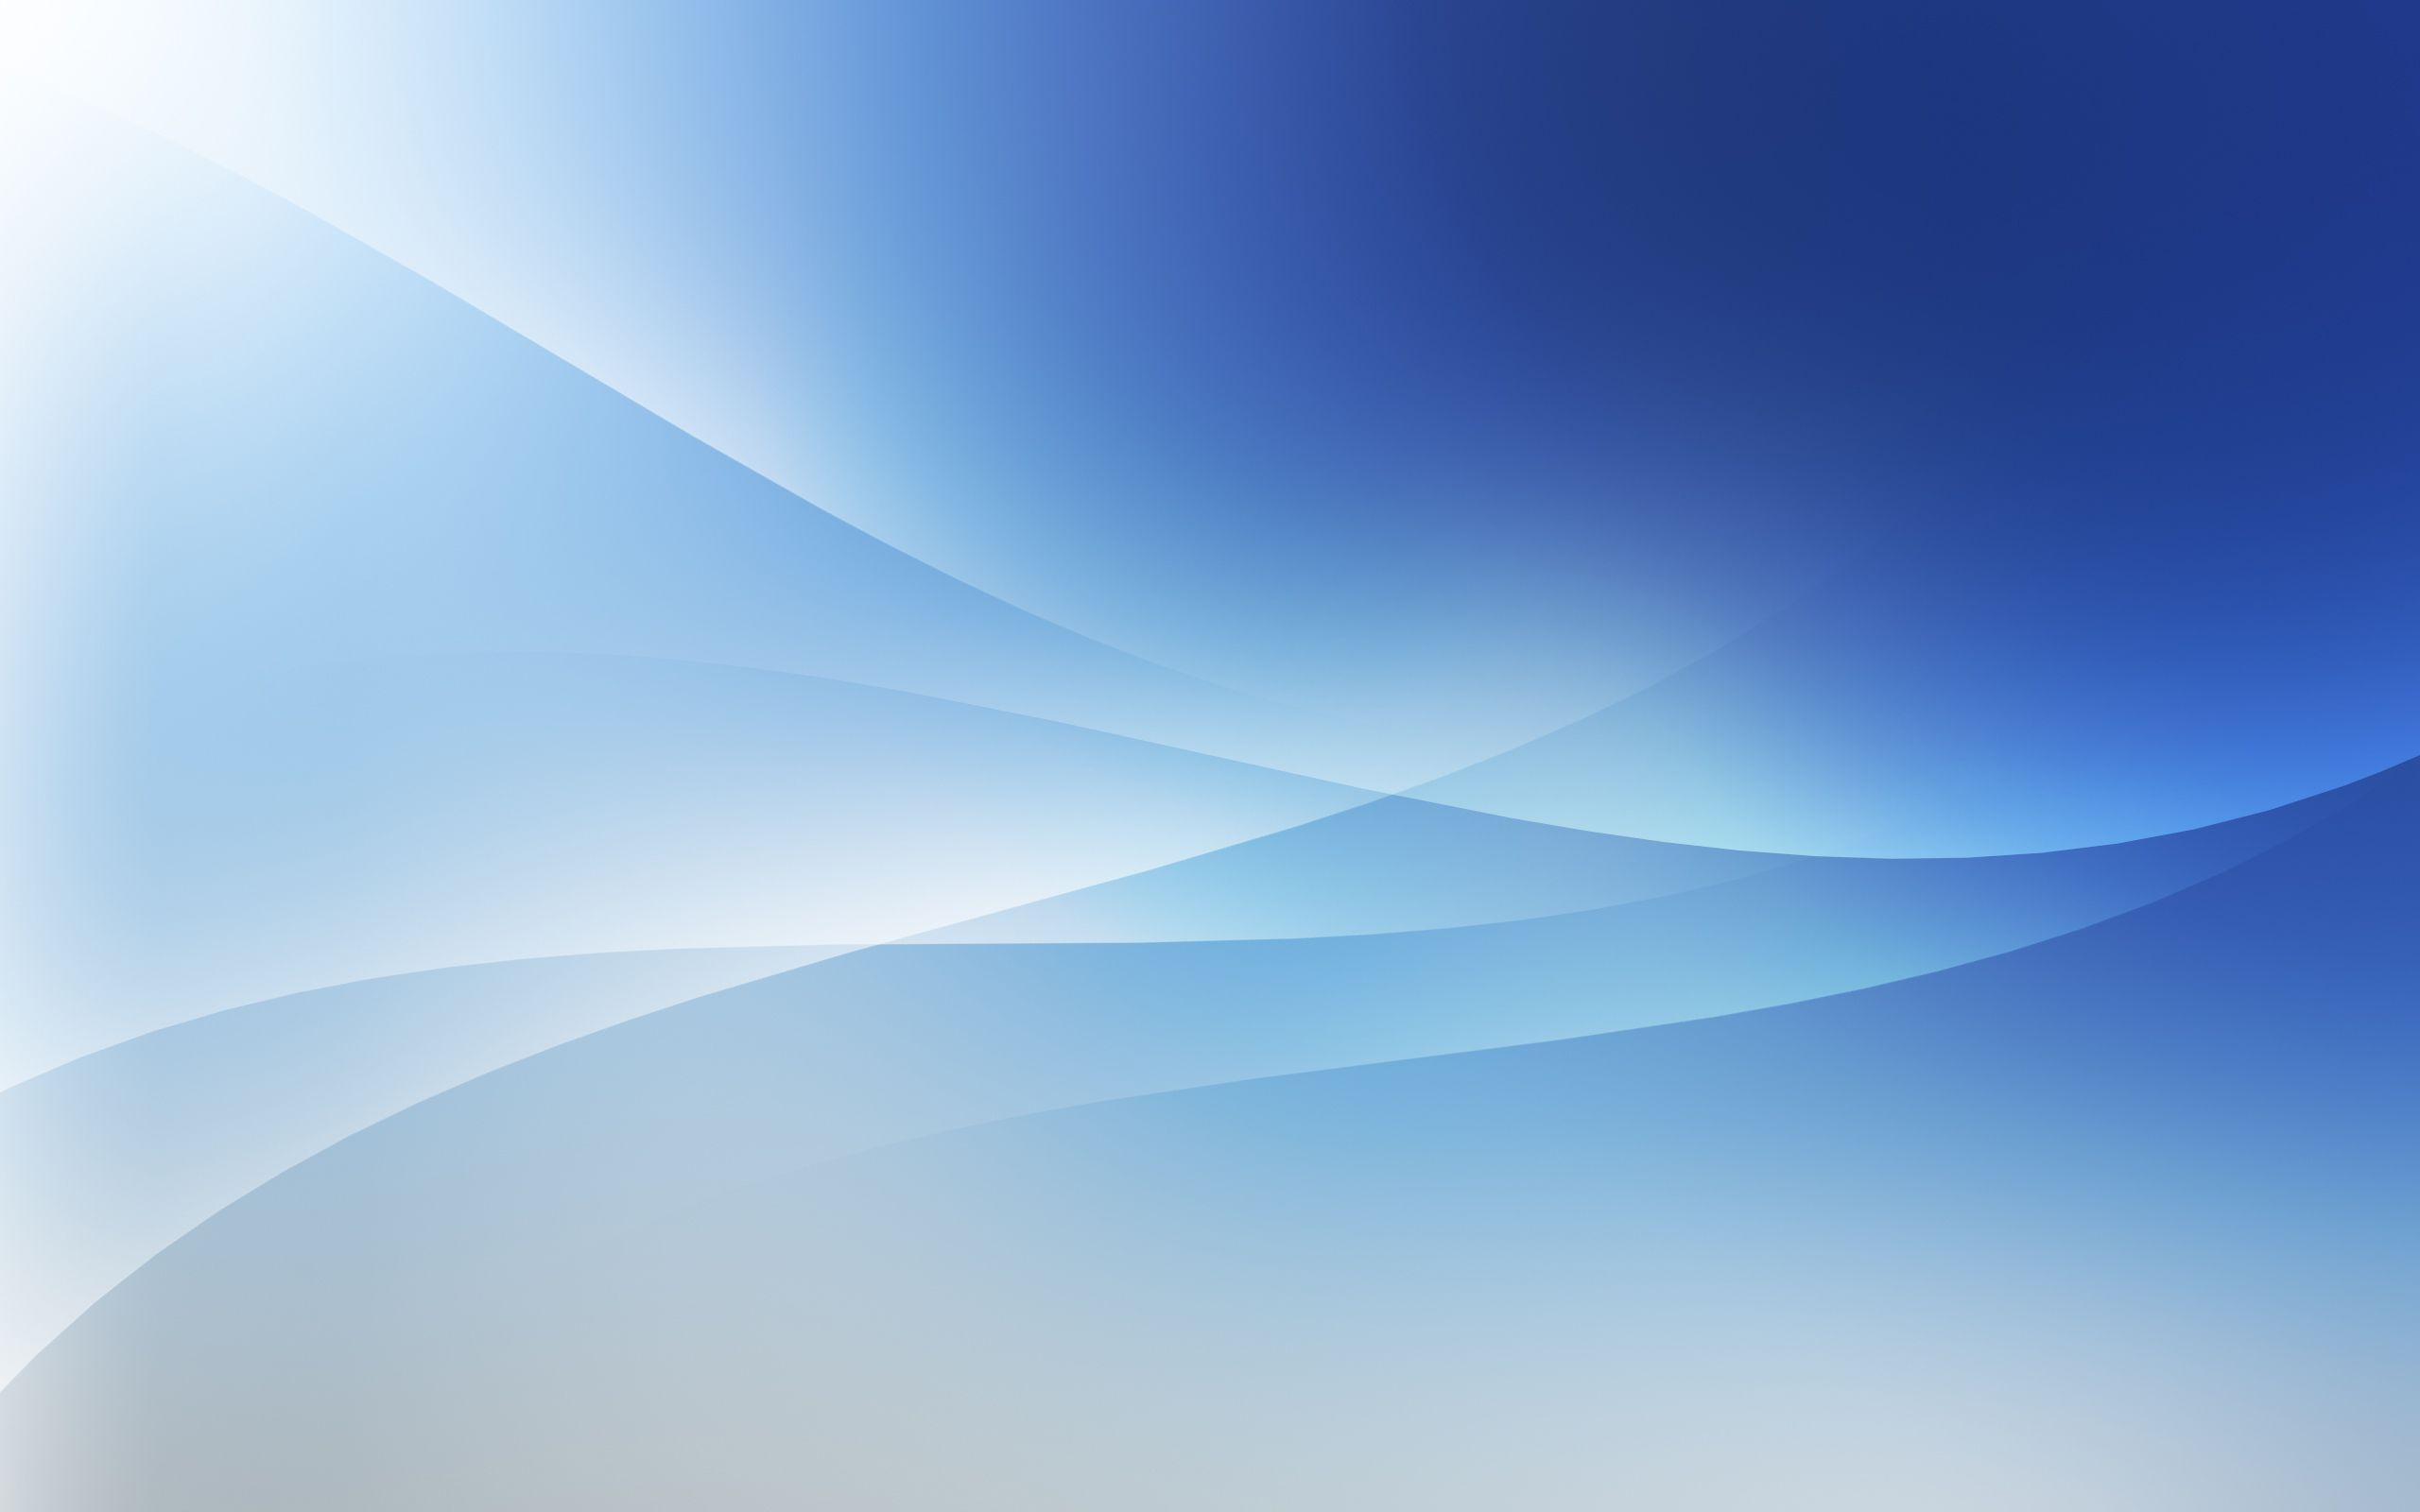 White And Blue Abstract Wallpaper For Android On Wallpaper 1080p Hd Blue And White Wallpaper White Background Wallpaper White Wallpaper